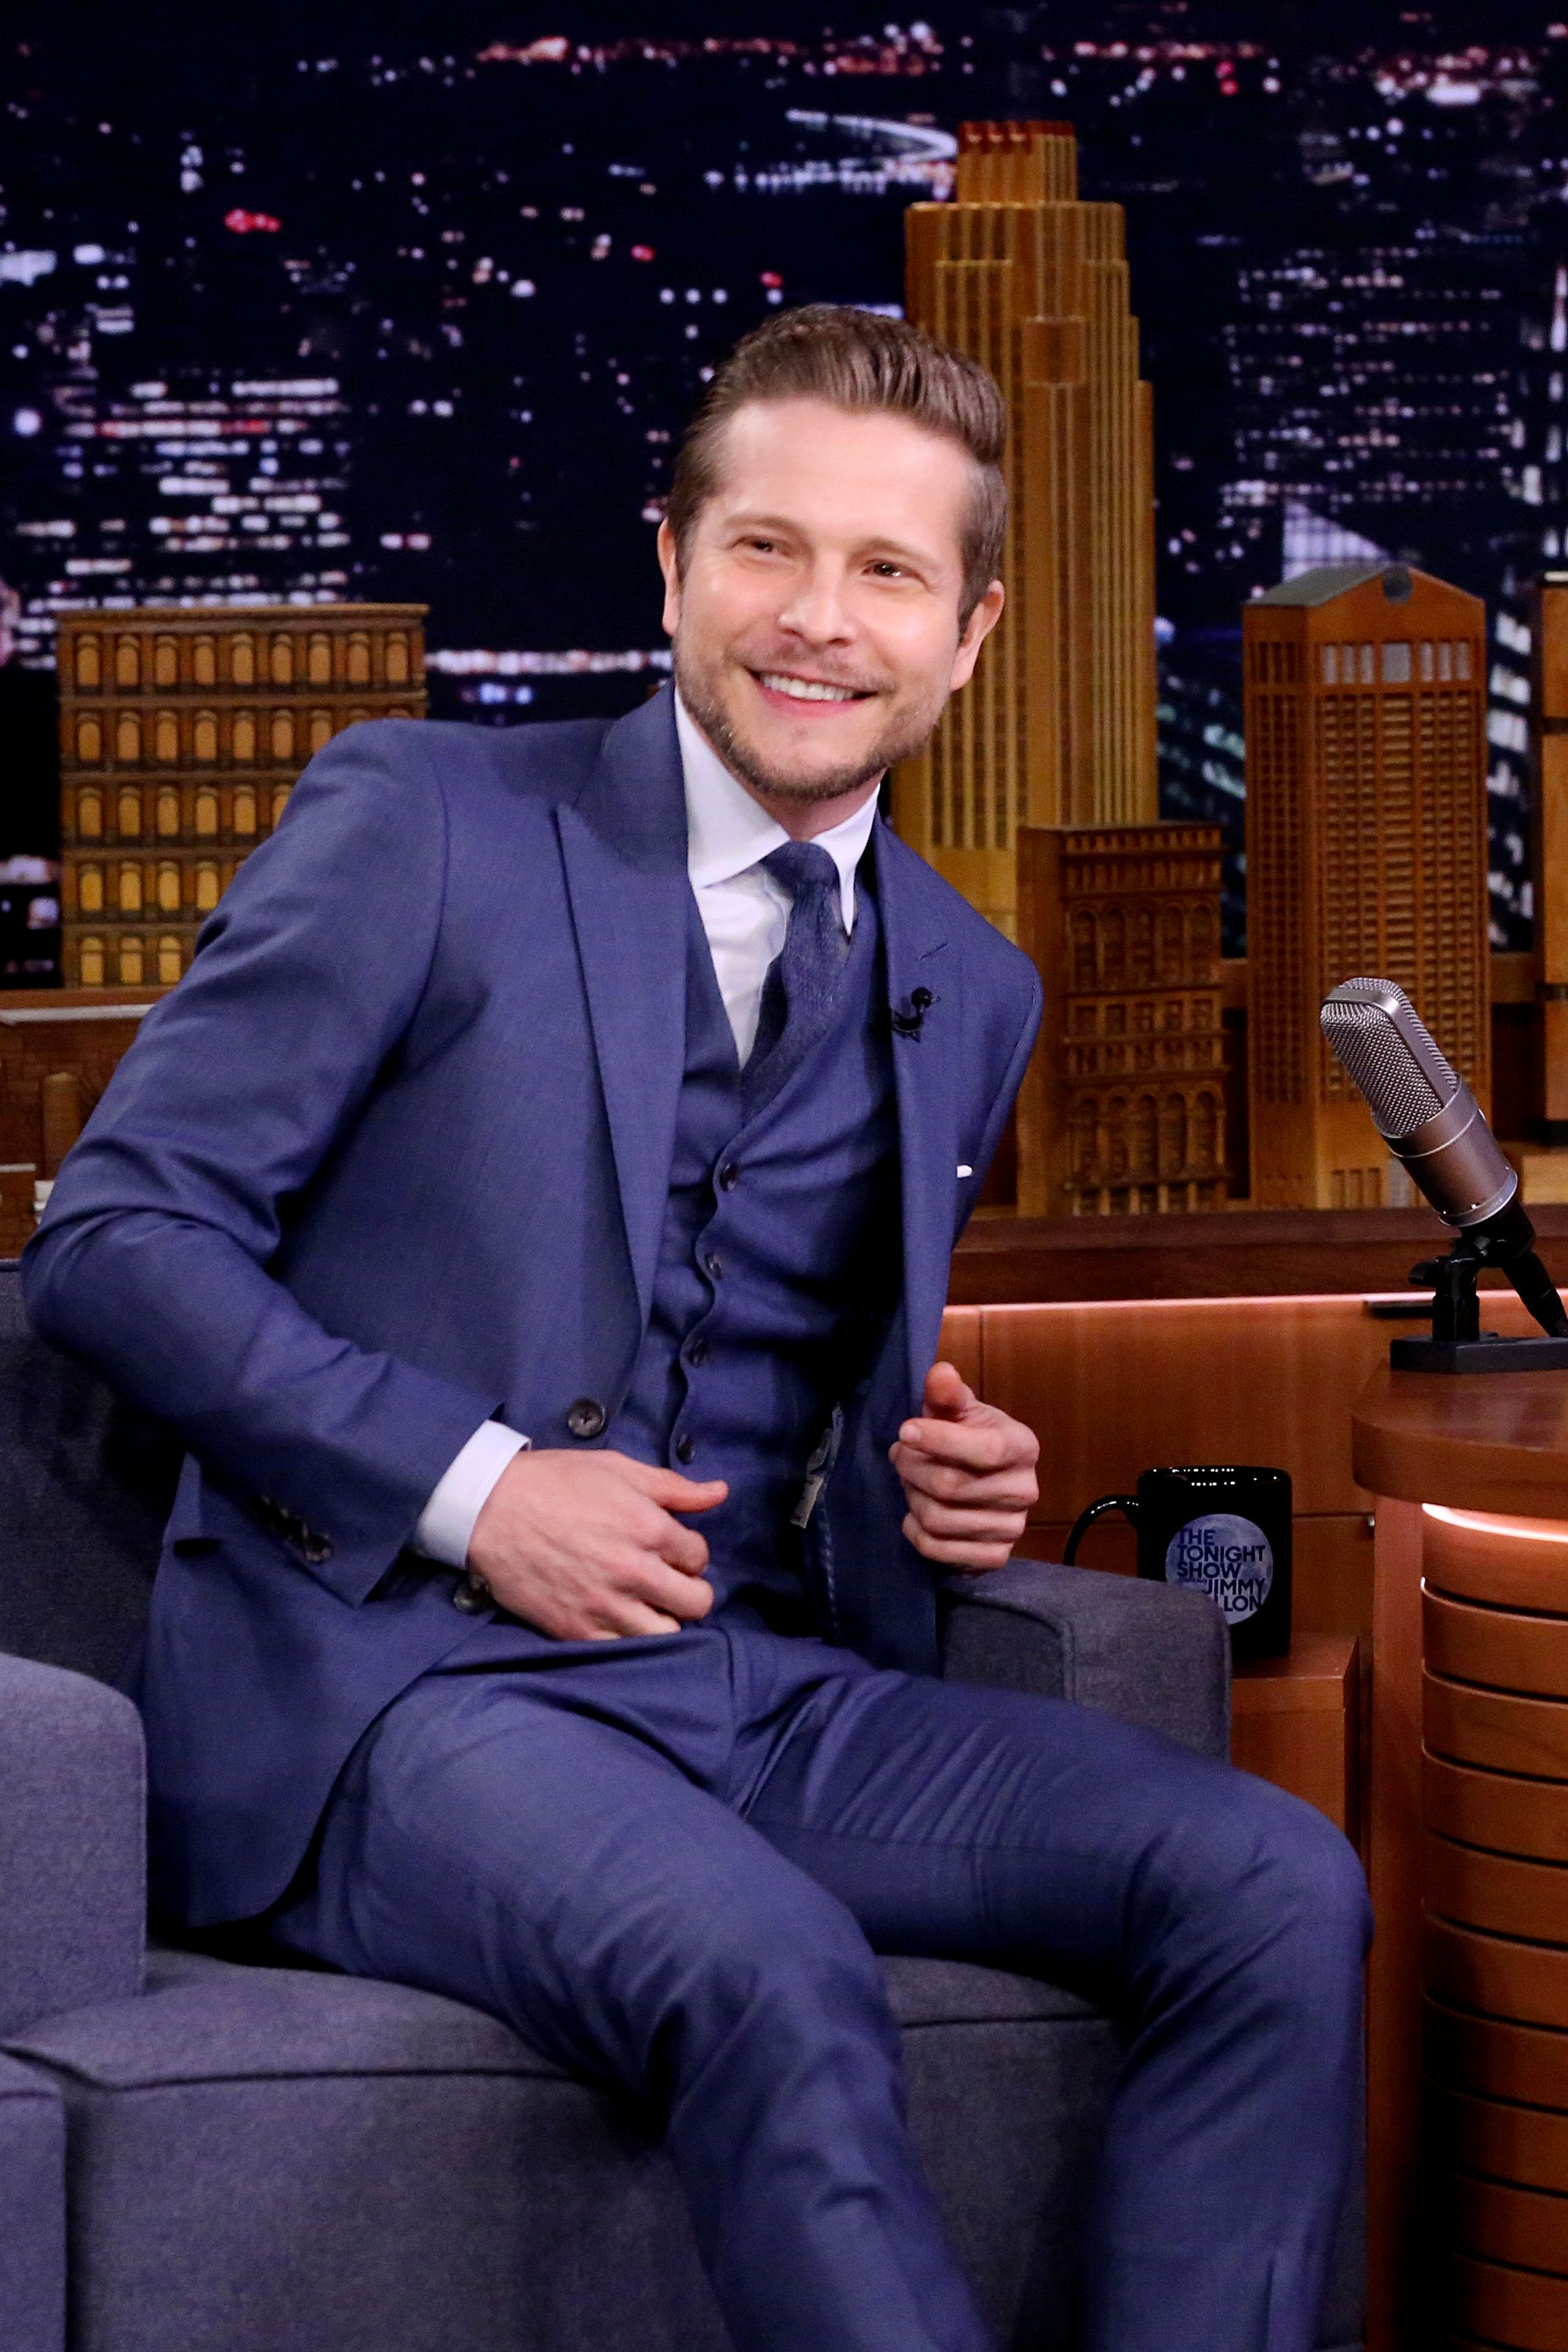 """Actor Matt Czuchry during an interview on """"The Tonight Show Starring Jimmy Fallon"""" September 12, 2018. 